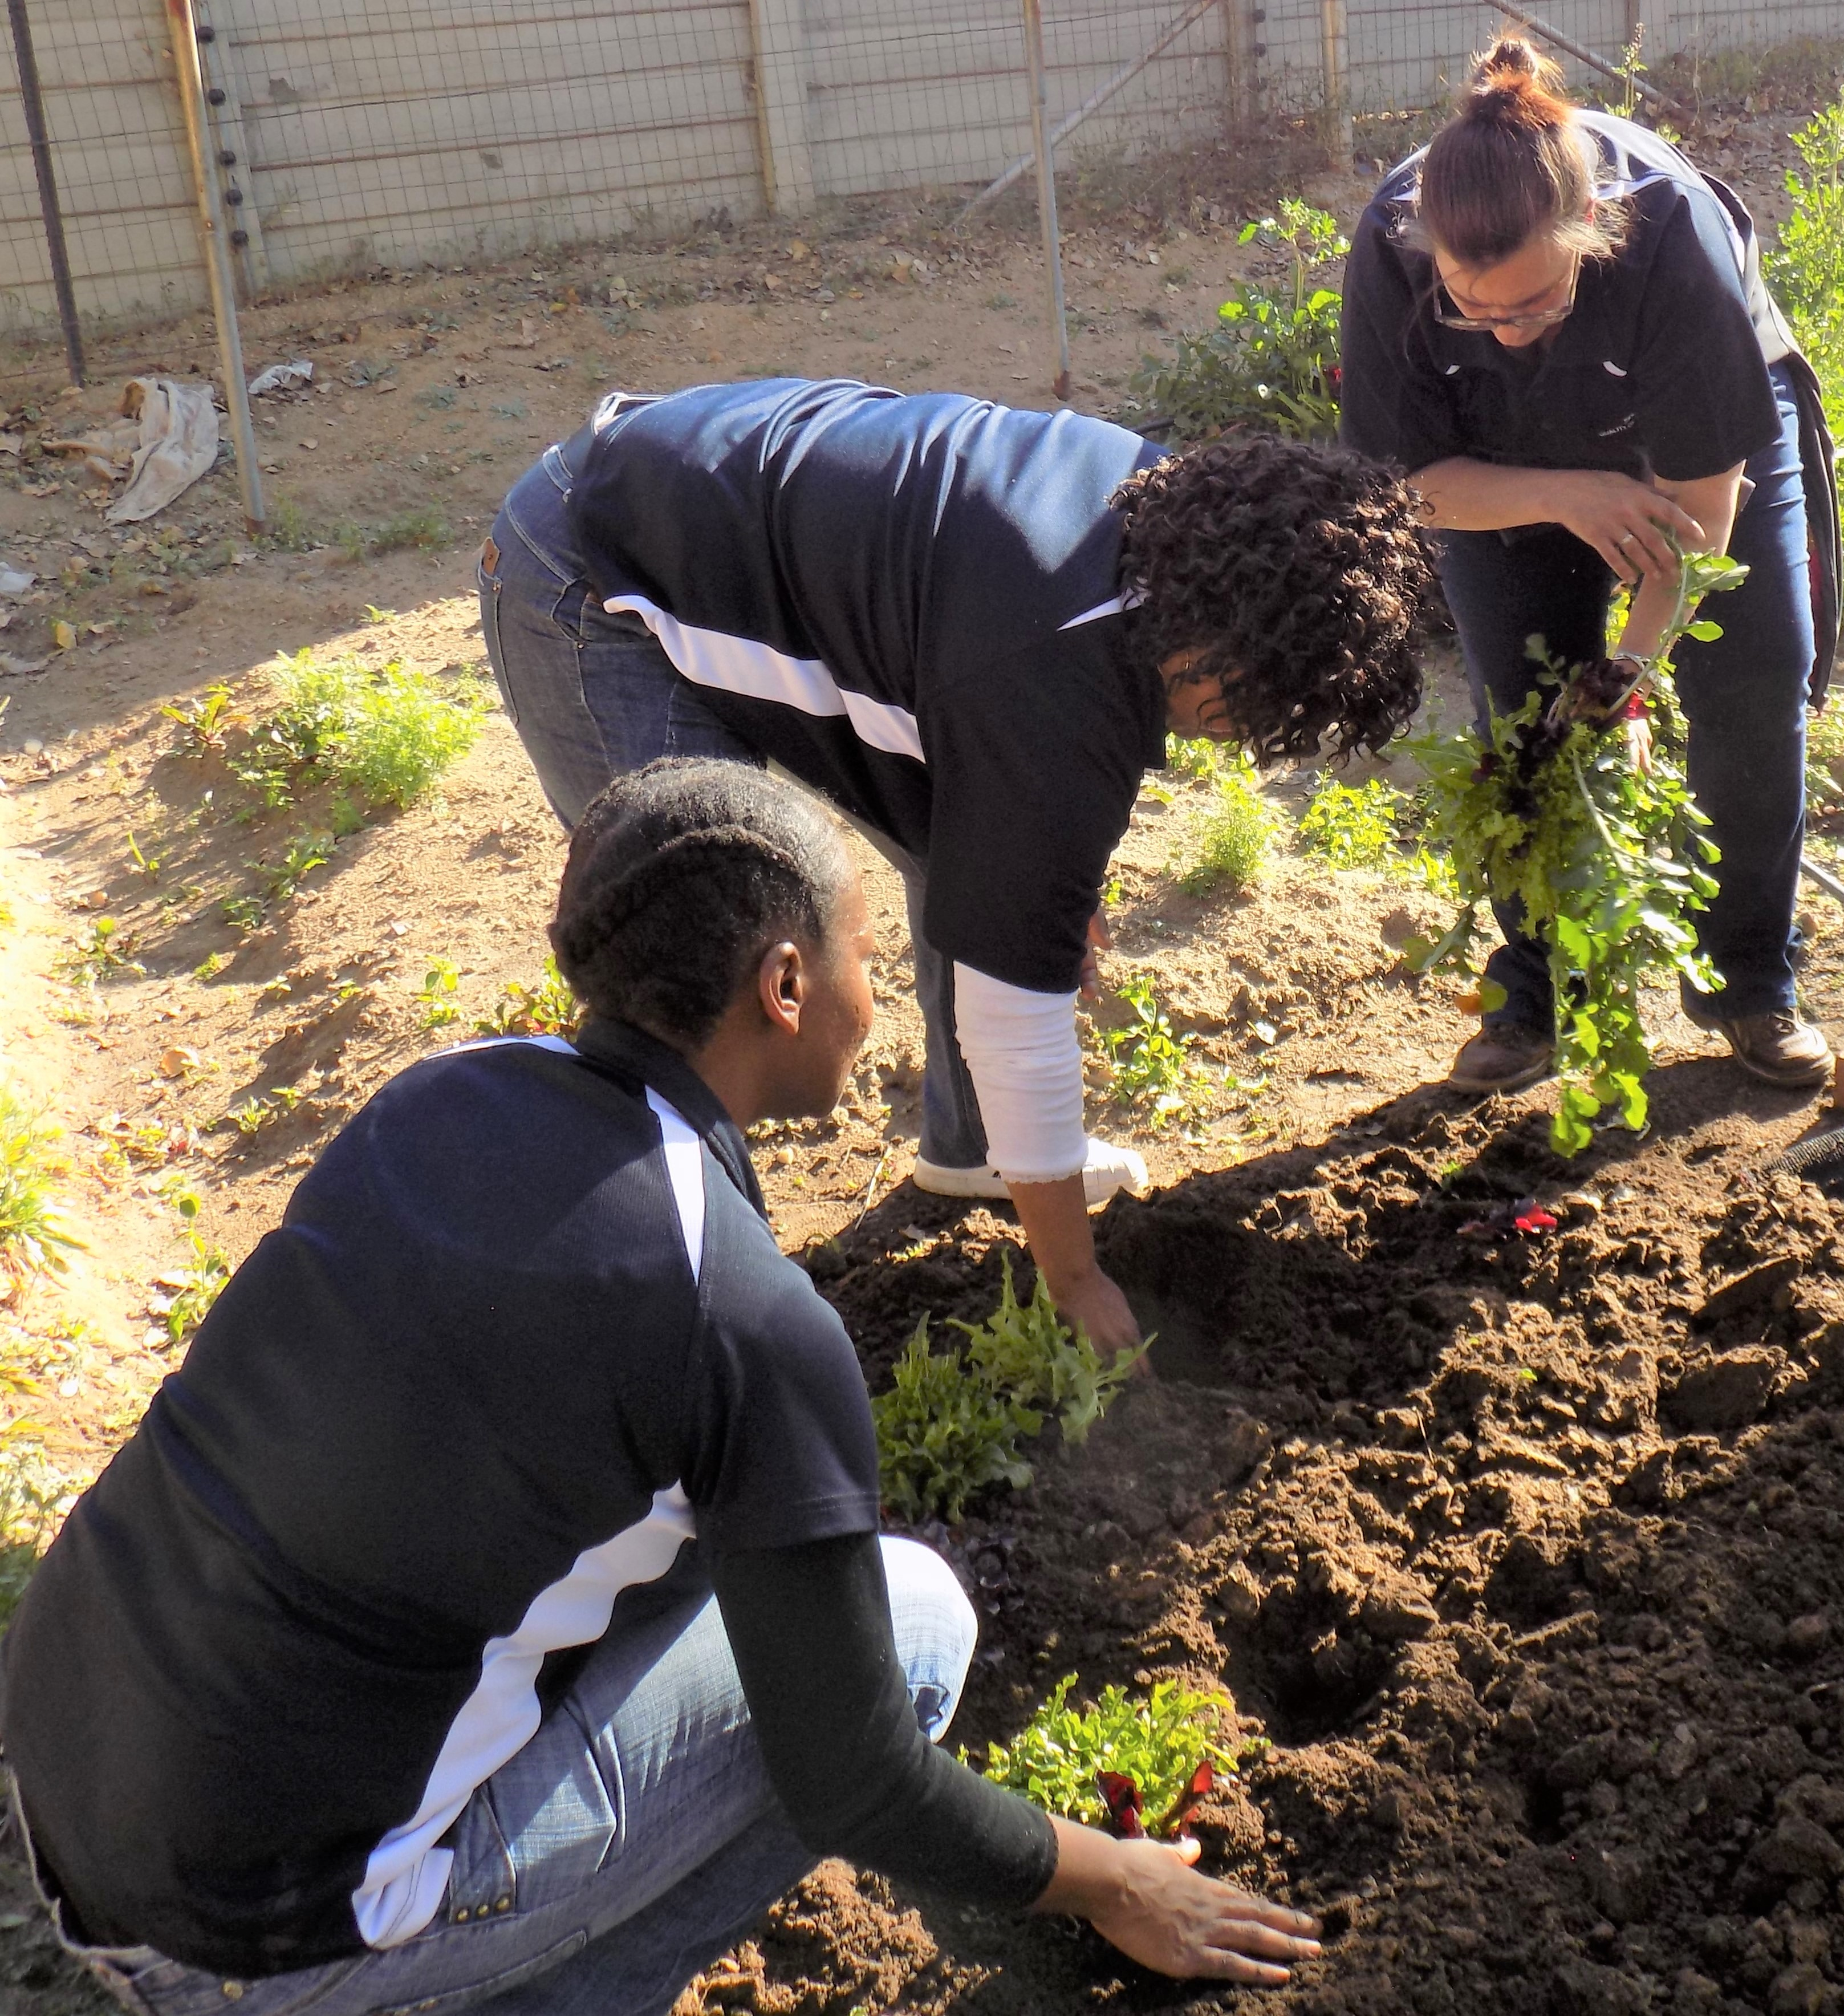 3 sodexo employees busy working in a vegetable garden